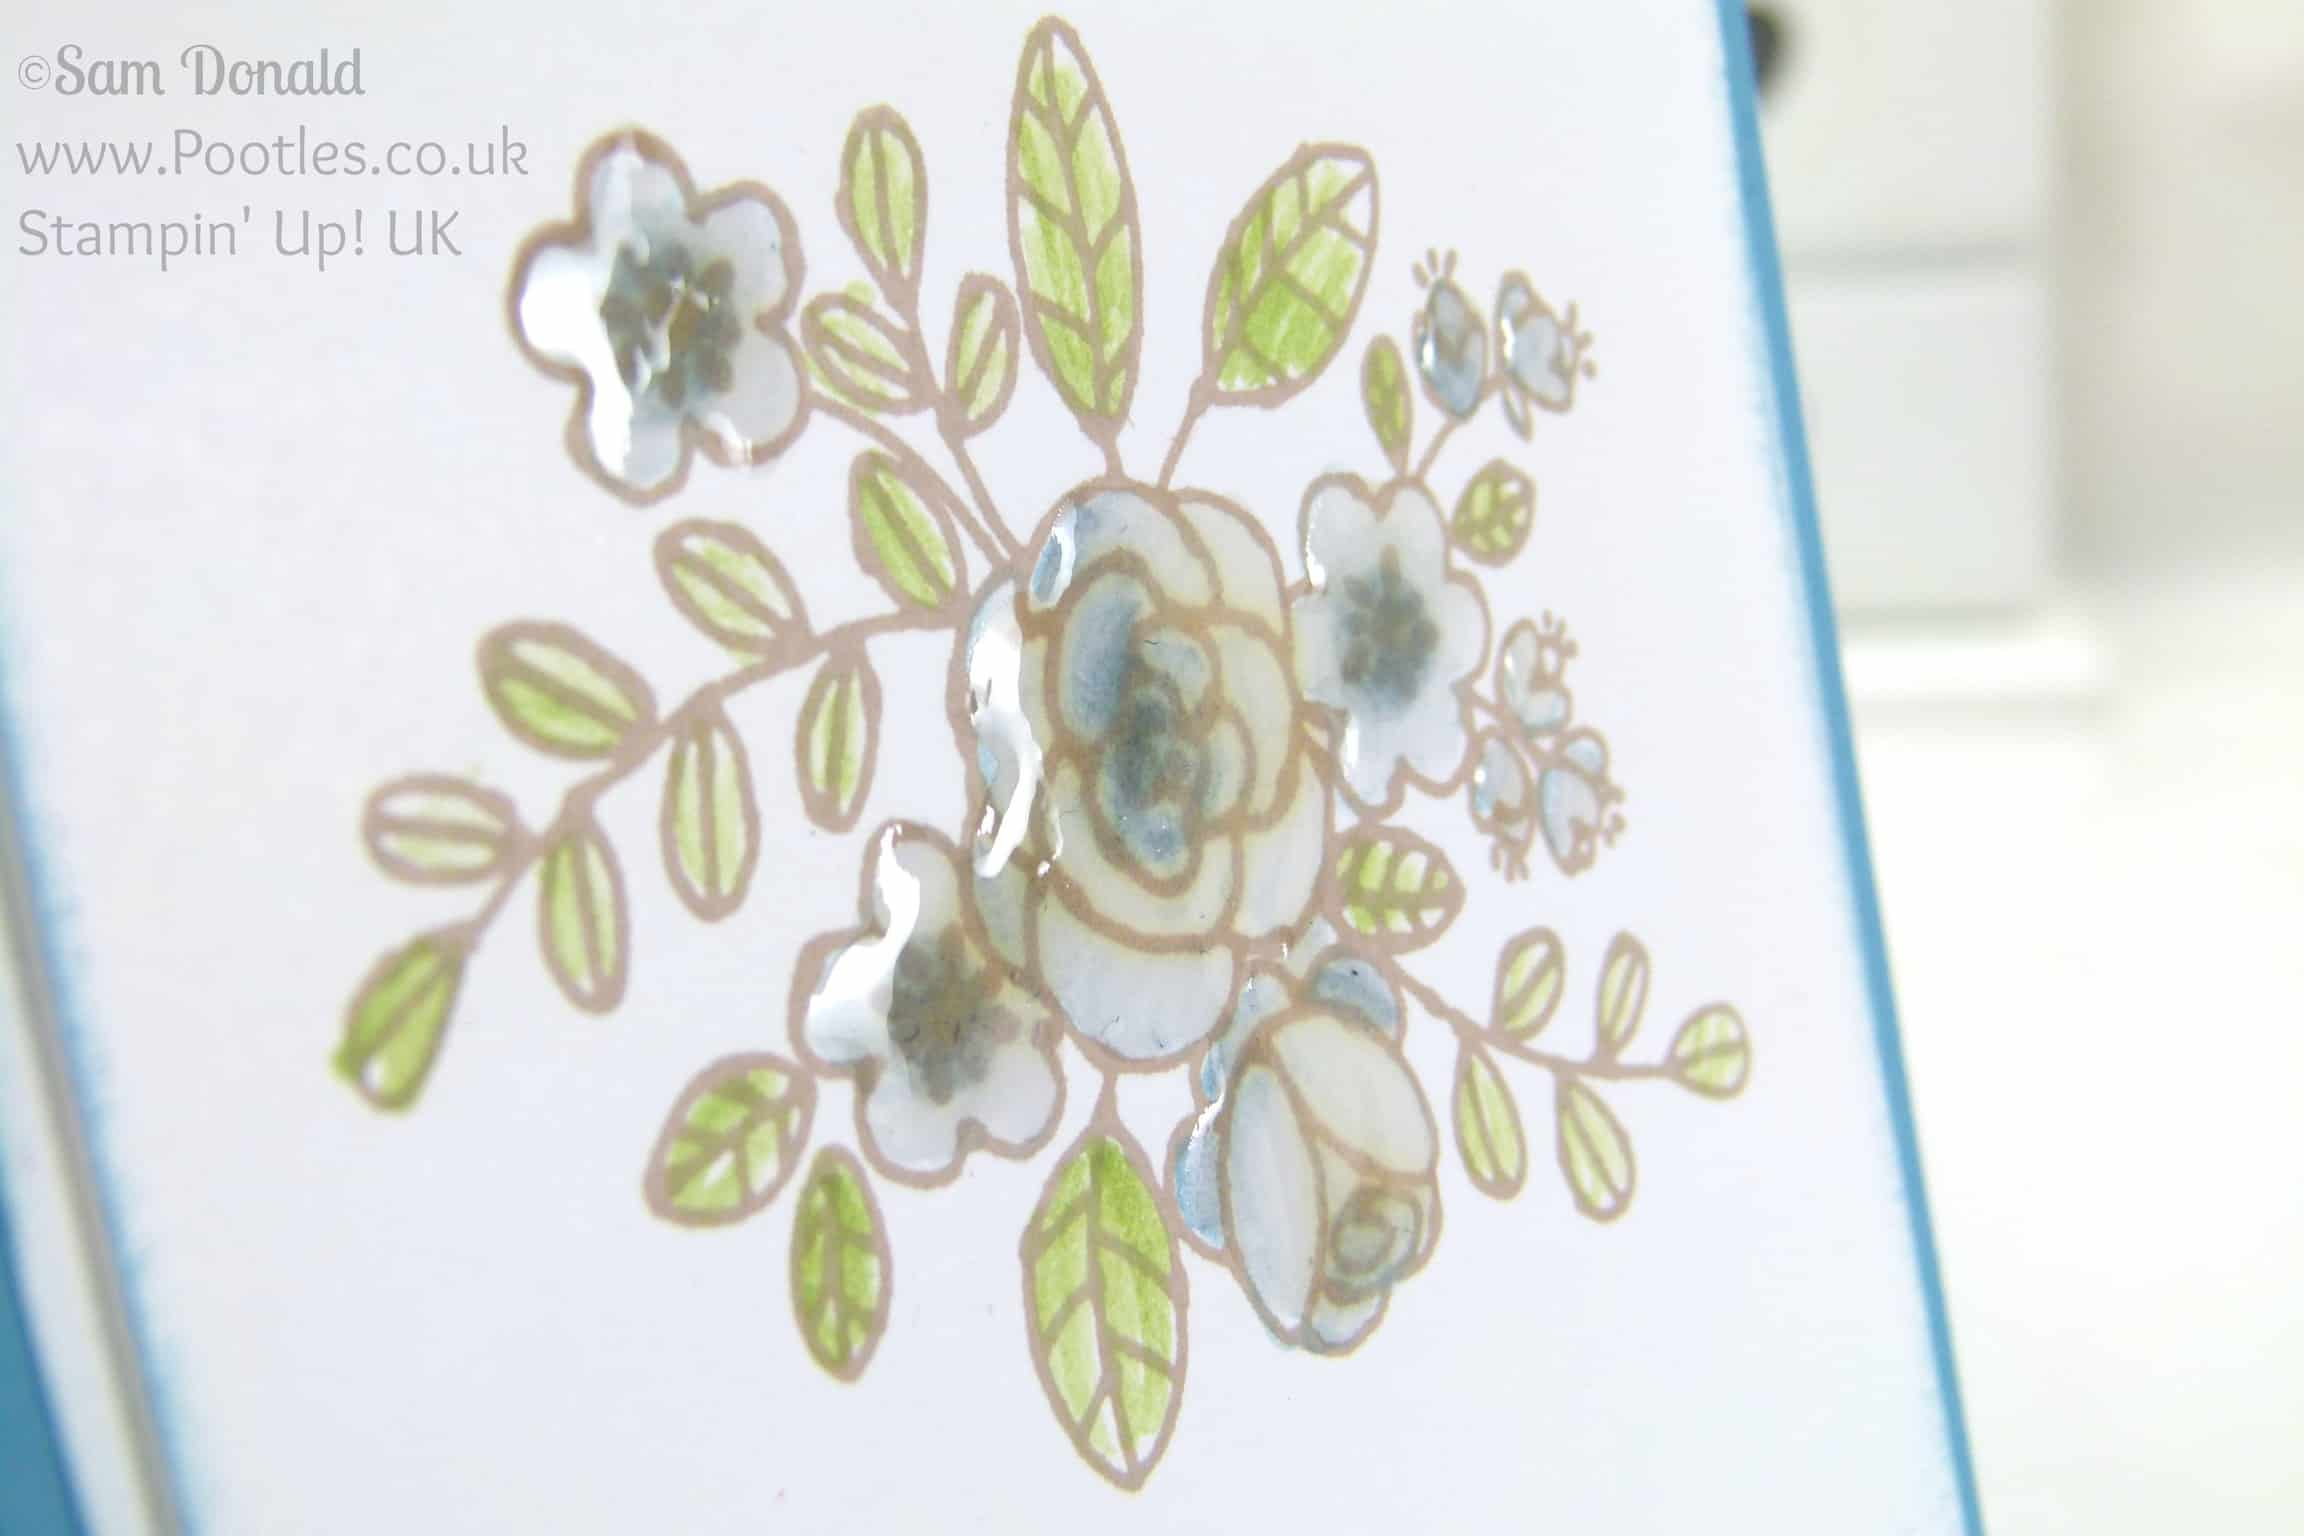 Stampin' Up! UK Independent Demonstrator Pootles. So Very Grateful for a Happy Day Crystal Effects Detail